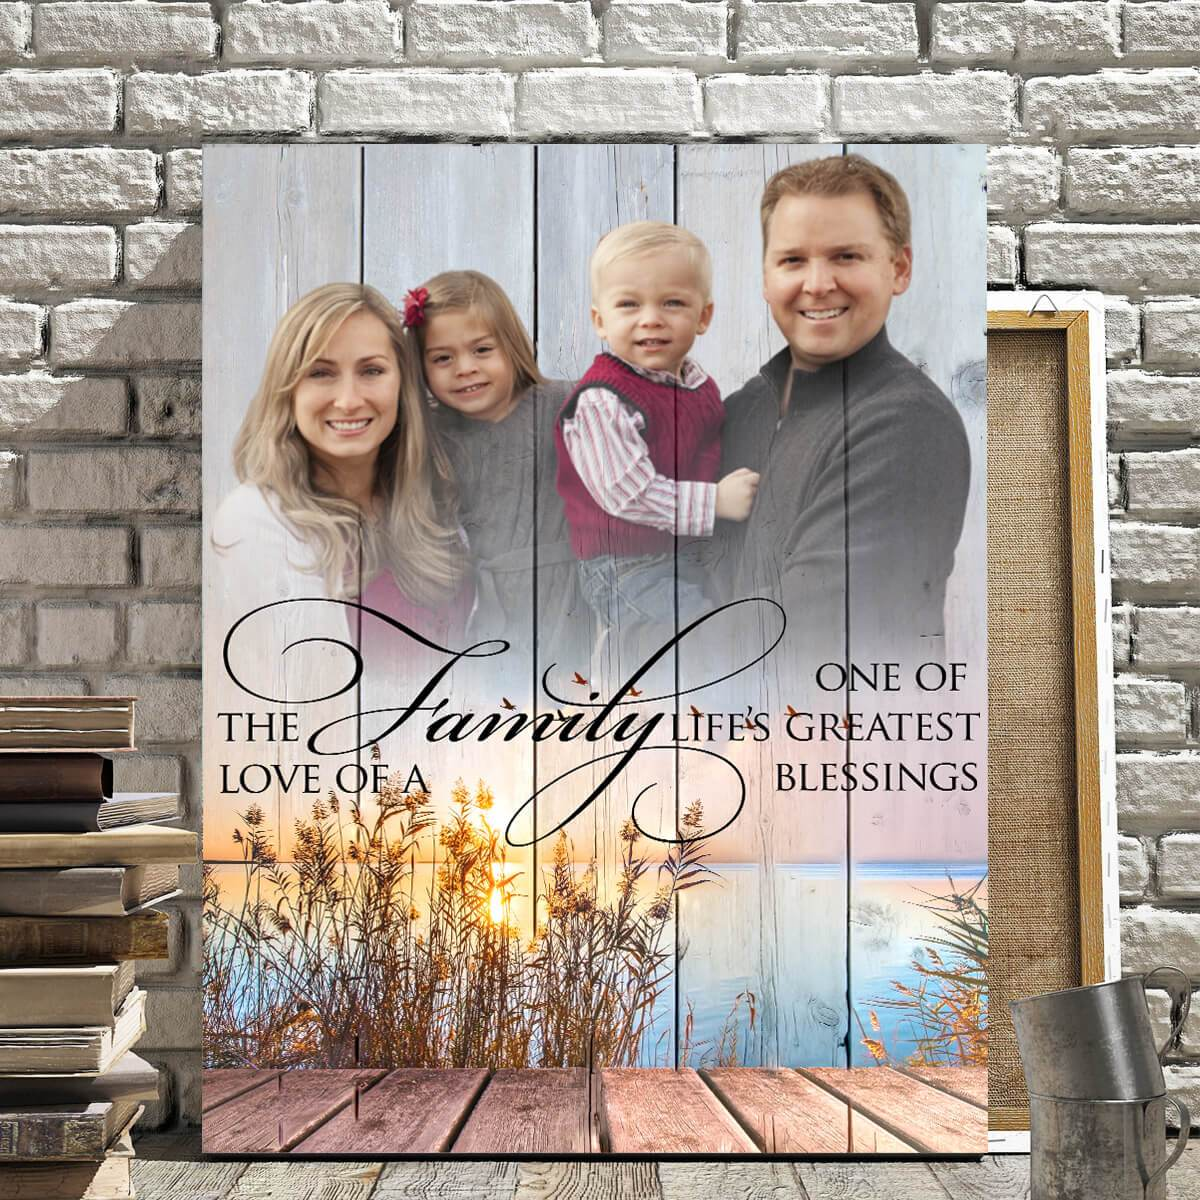 The Love Of A Family Custom Photo Upload